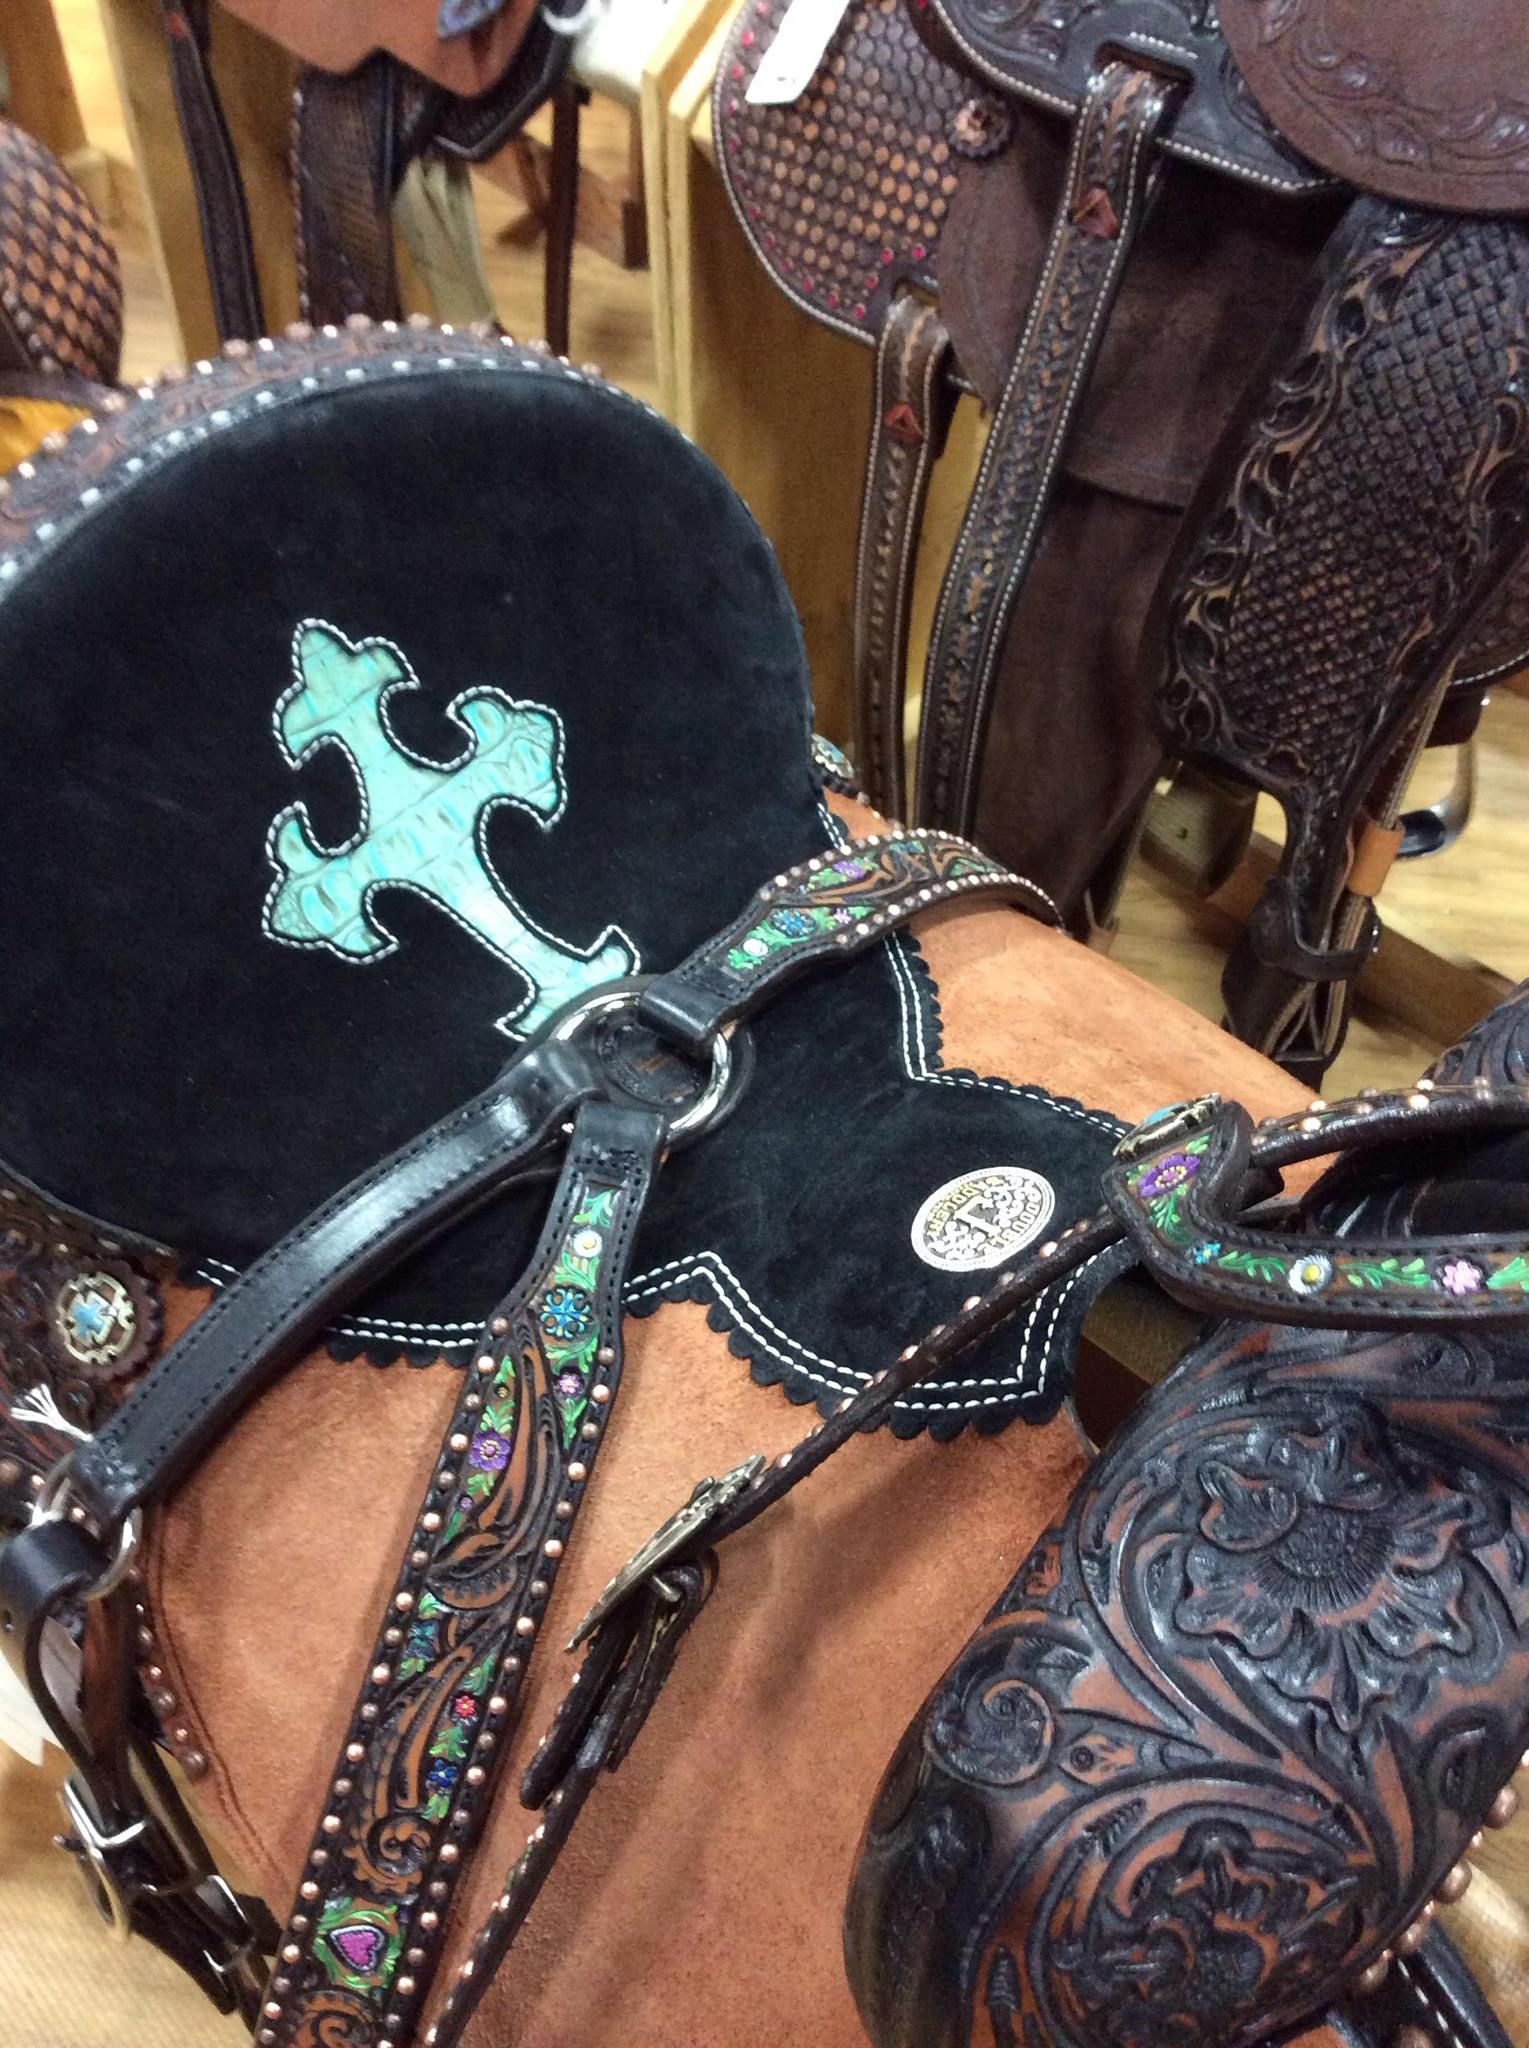 Double J Saddlery at the NFR, booth 945 in Mandalay Bay